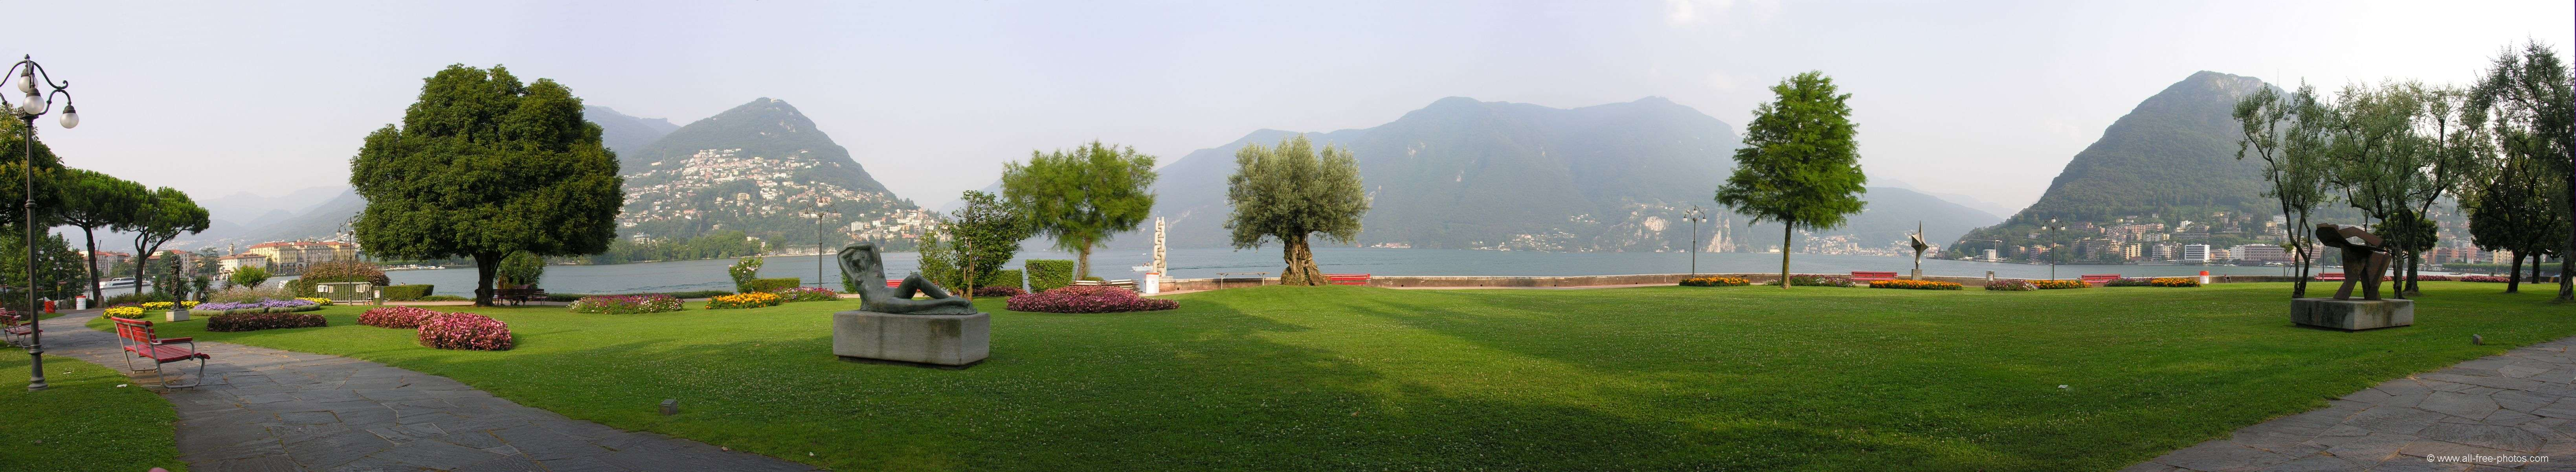 Lugano lake - Switzerland